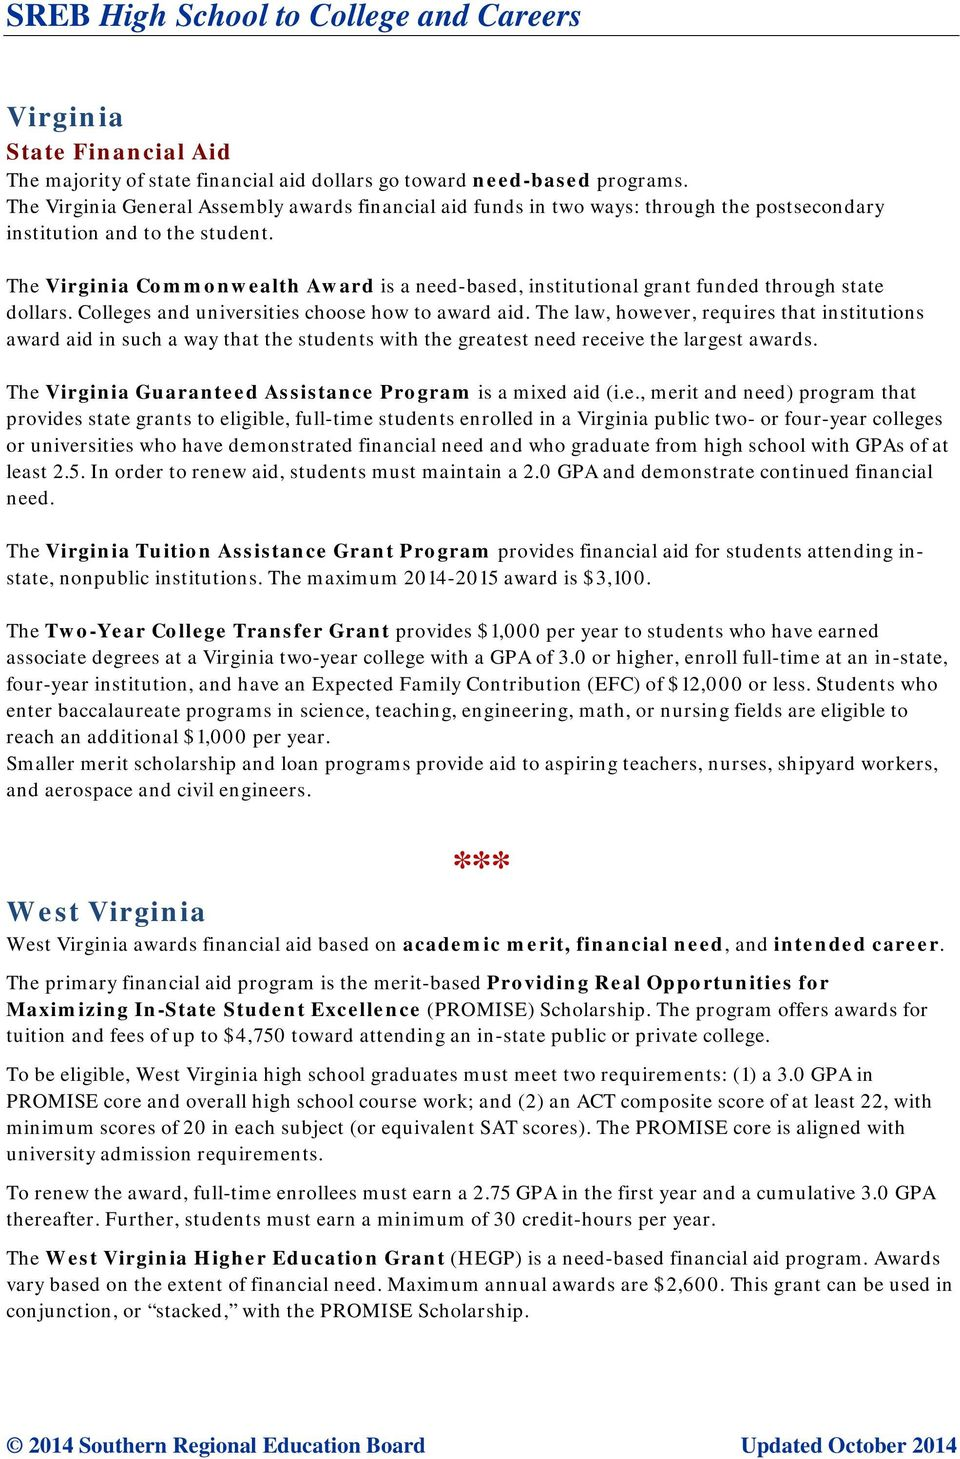 The Virginia Commonwealth Award is a need-based, institutional grant funded through state dollars. Colleges and universities choose how to award aid.